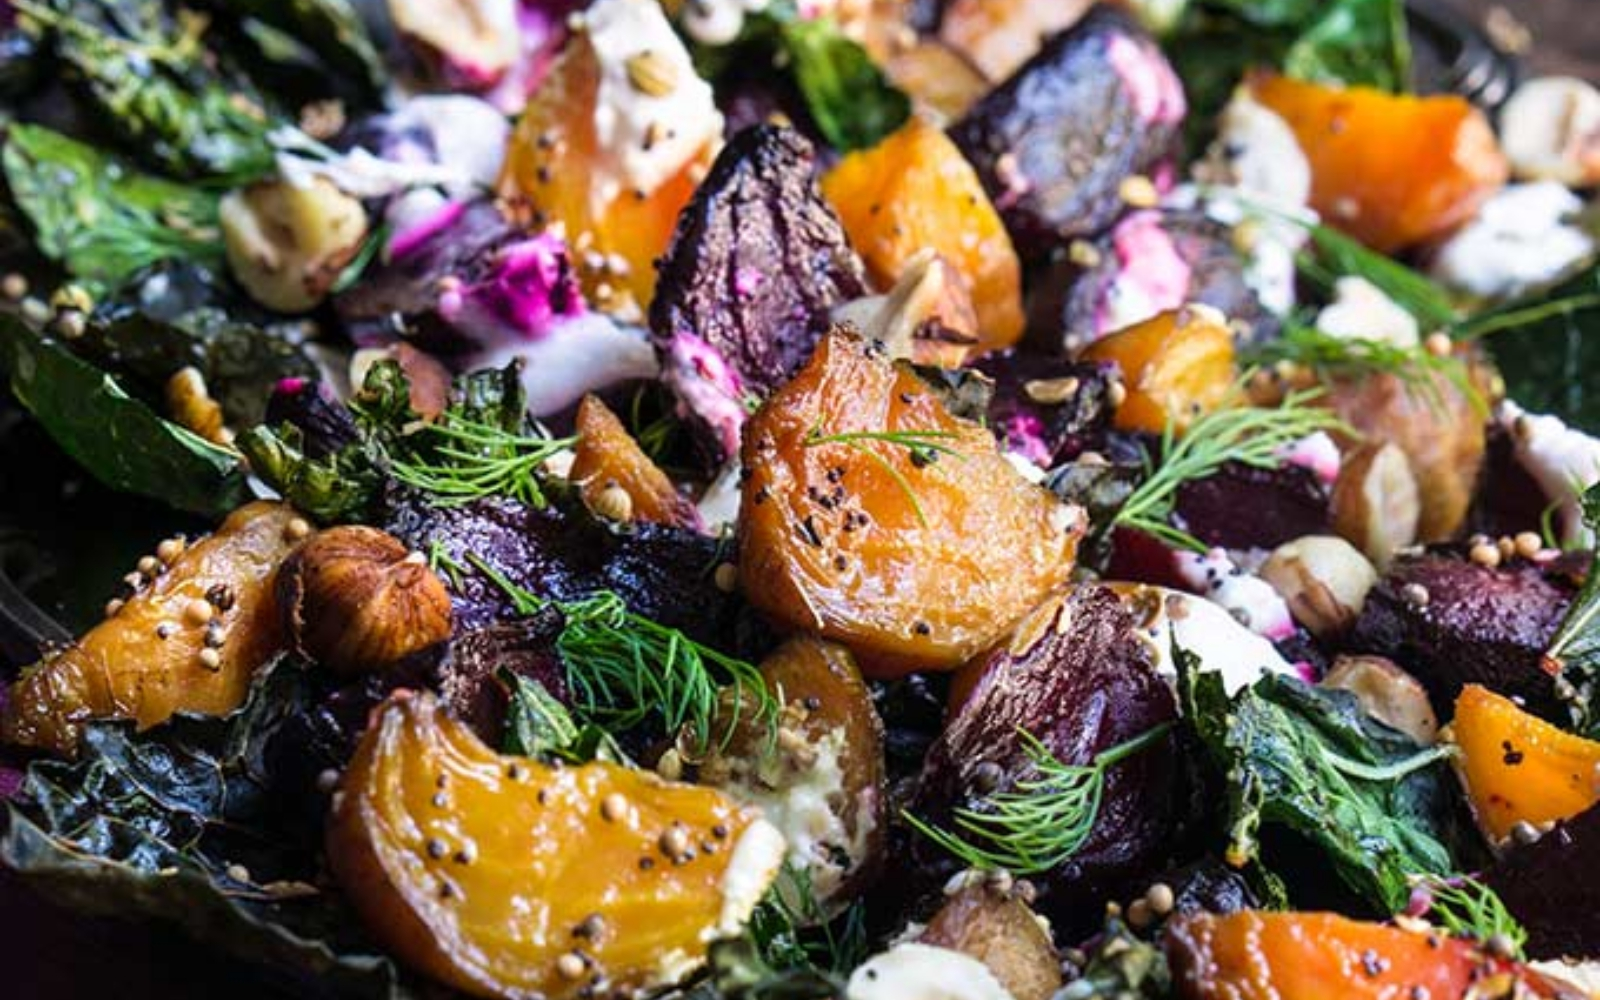 Vegan Grain-Free Roasted Beets and Kale Salad with Horseradish Crema and Hazelnuts